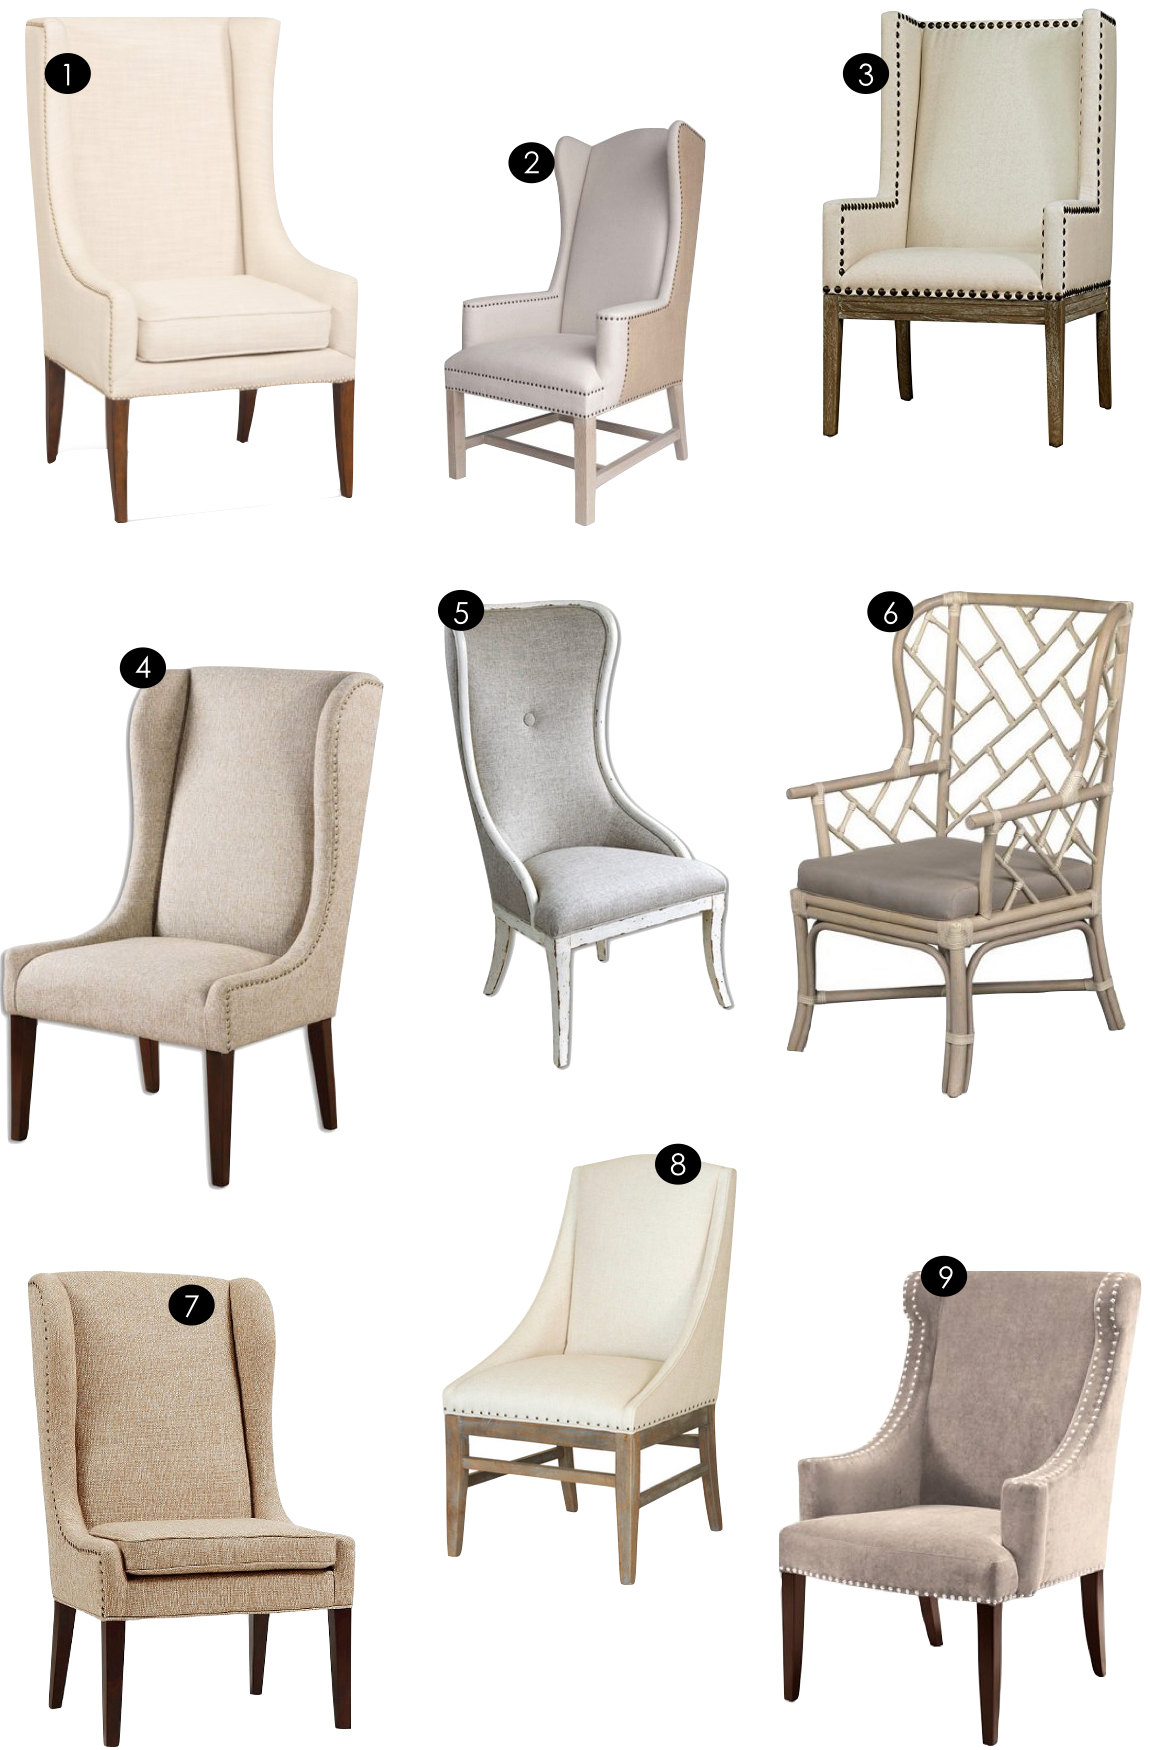 Host + Hostess Chairs  |  Kiki's List